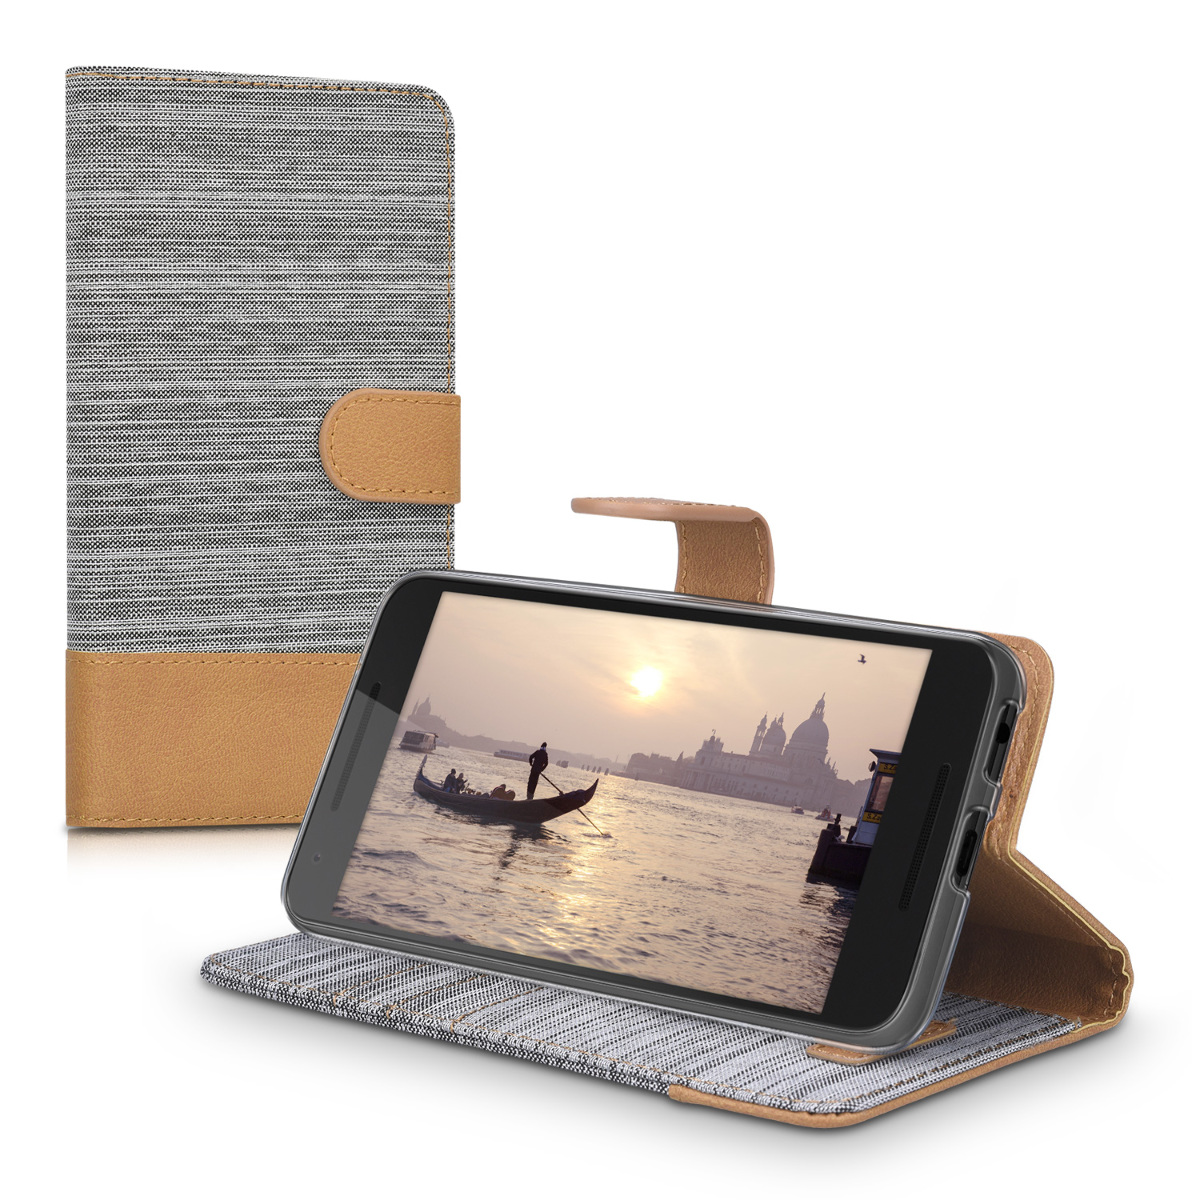 kwmobile-FABRIC-WALLET-PROTECTIVE-COVER-FOR-LG-GOOGLE-NEXUS-5X-COVER-CASE-BAG